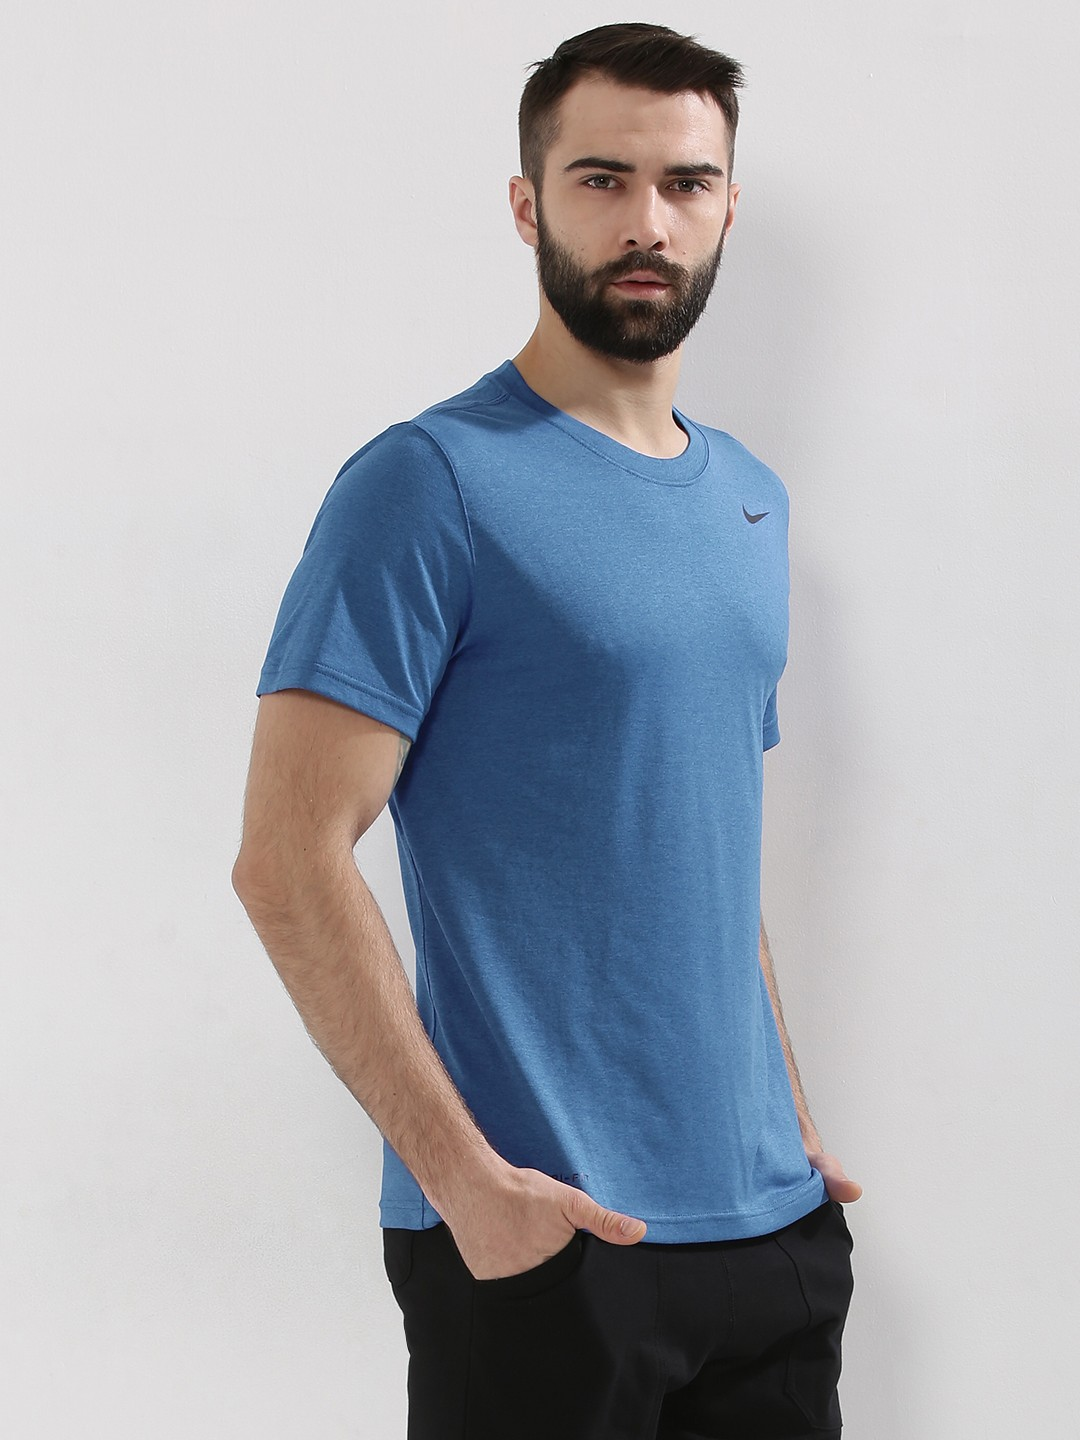 Buy nike legend 2 0 dri fit training t shirt for men men for Buy dri fit shirts